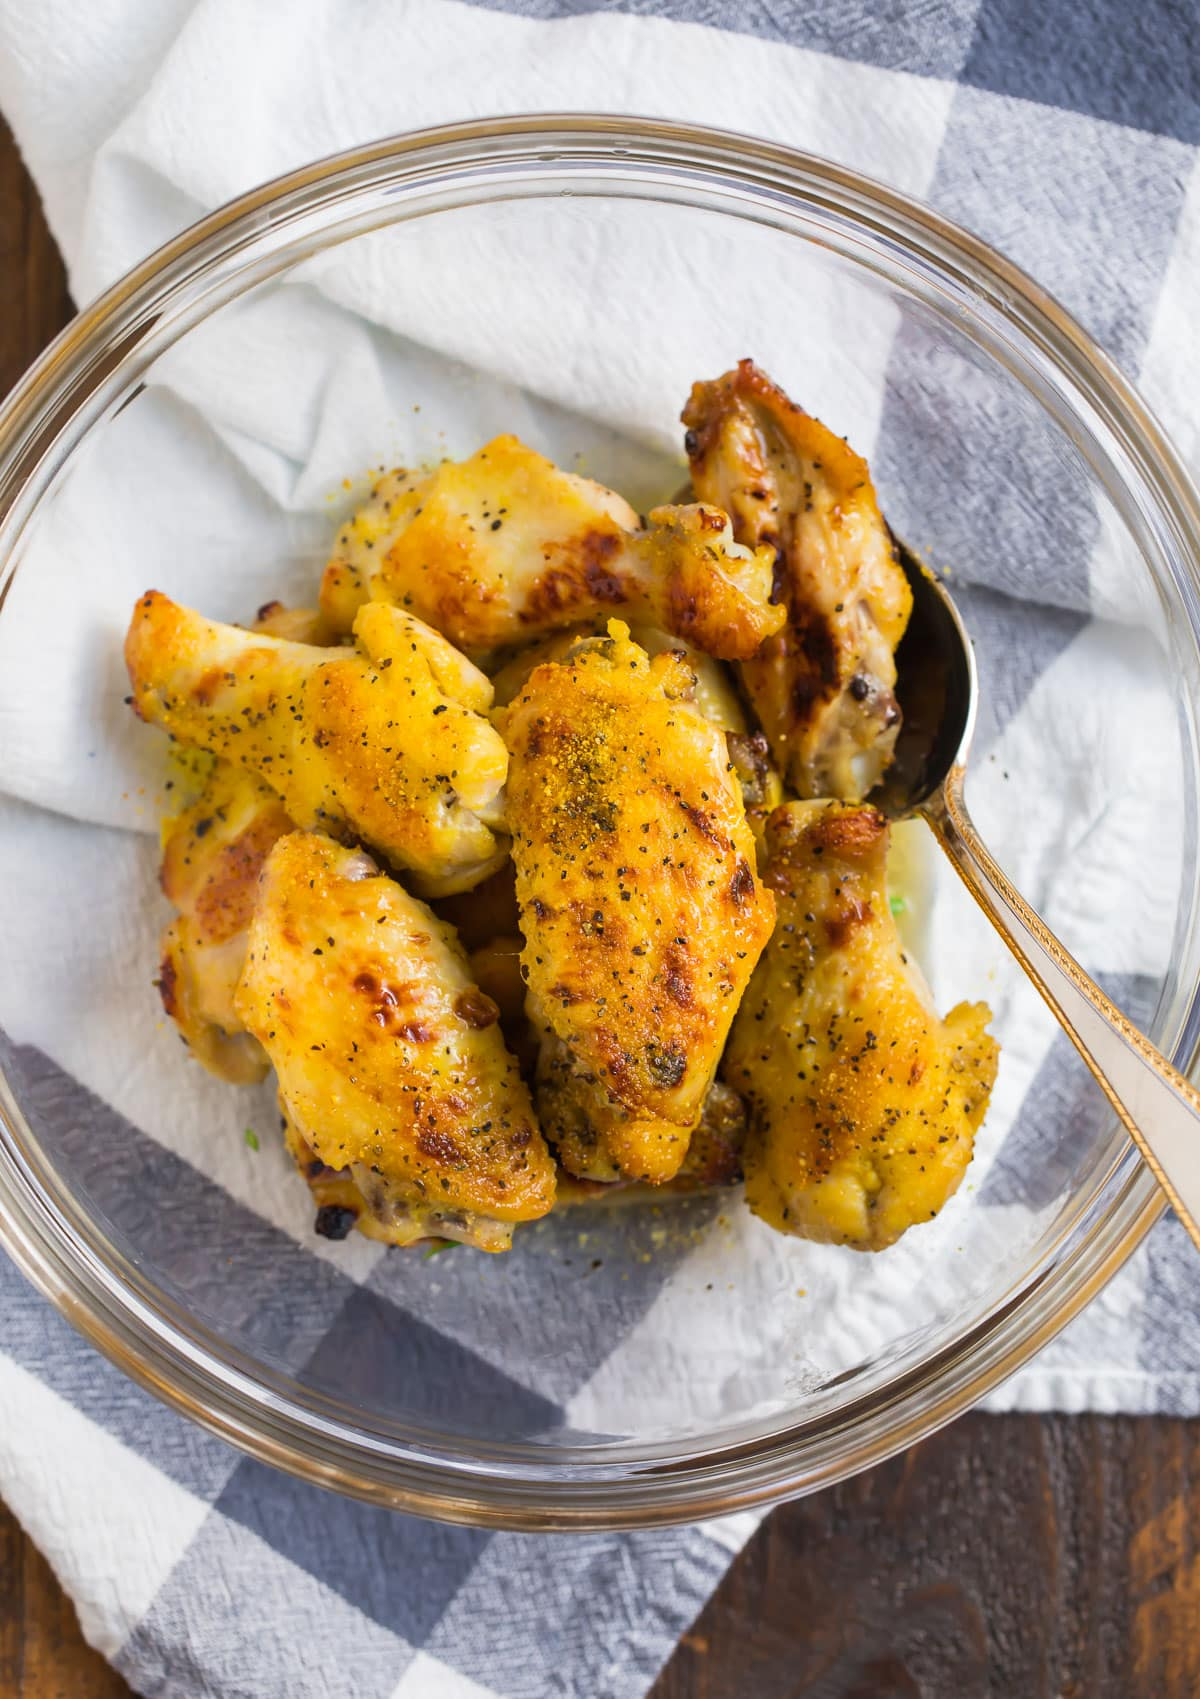 Lemon pepper wings in a bowl